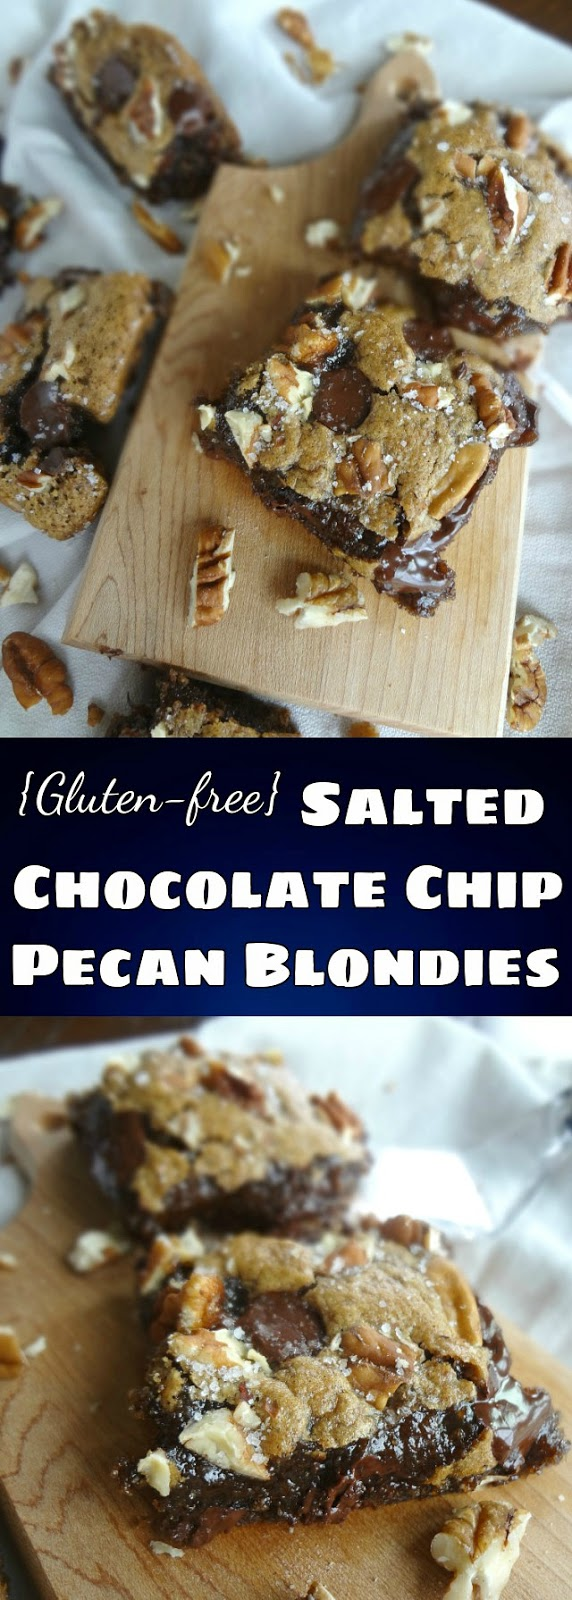 {Gluten-free} Salted Chocolate Chip Pecan Blondies